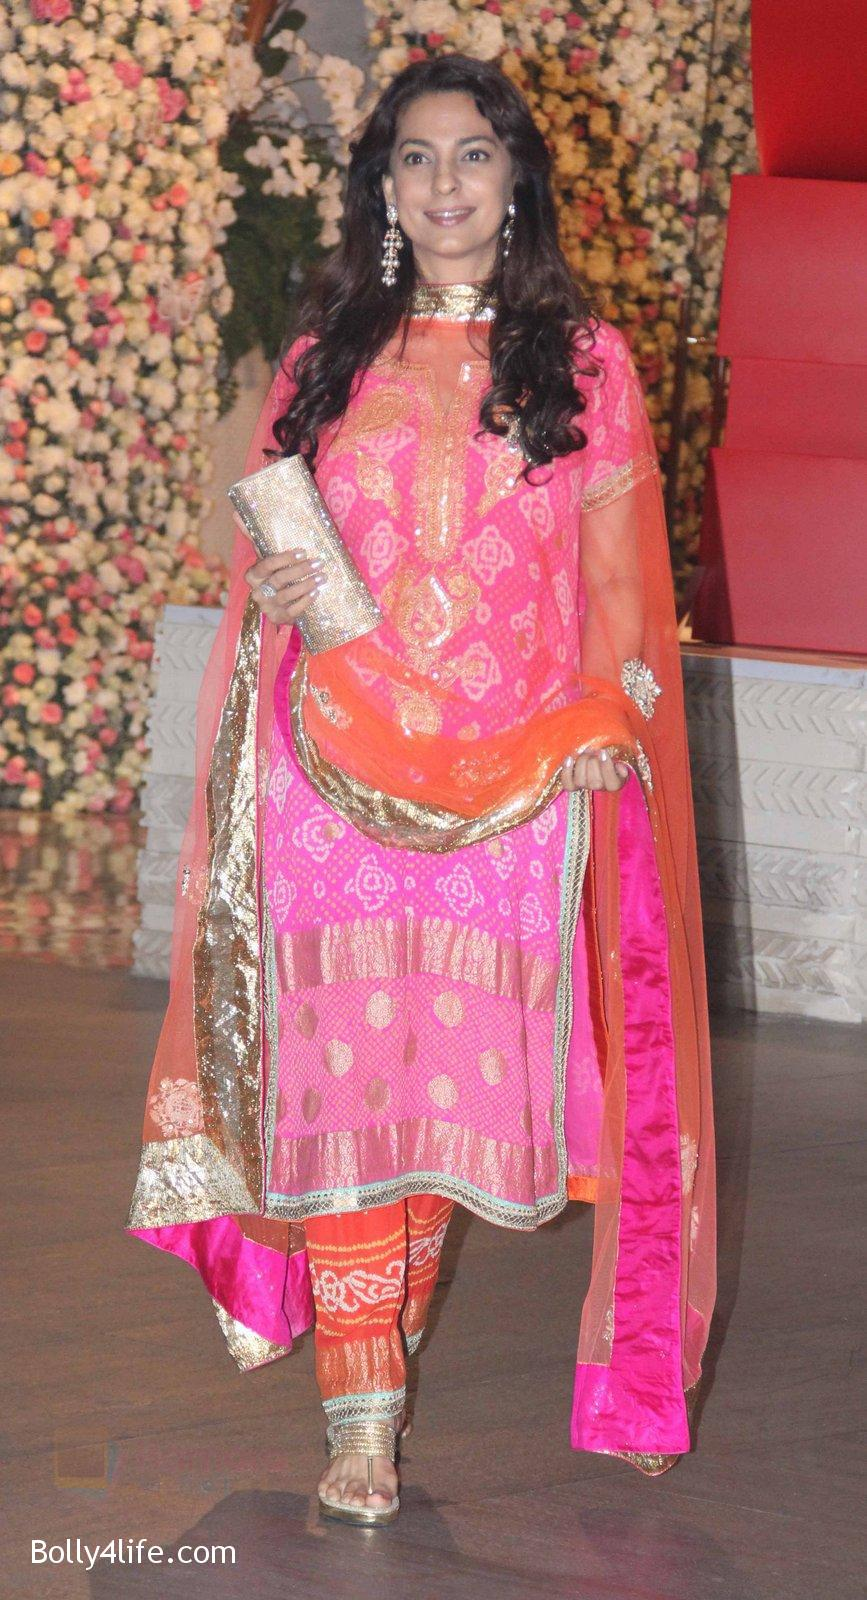 Juhi-Chawla-at-the-Ambanis-wedding-party-of-their-niece-Isheta-Salgaoncar-2.jpg